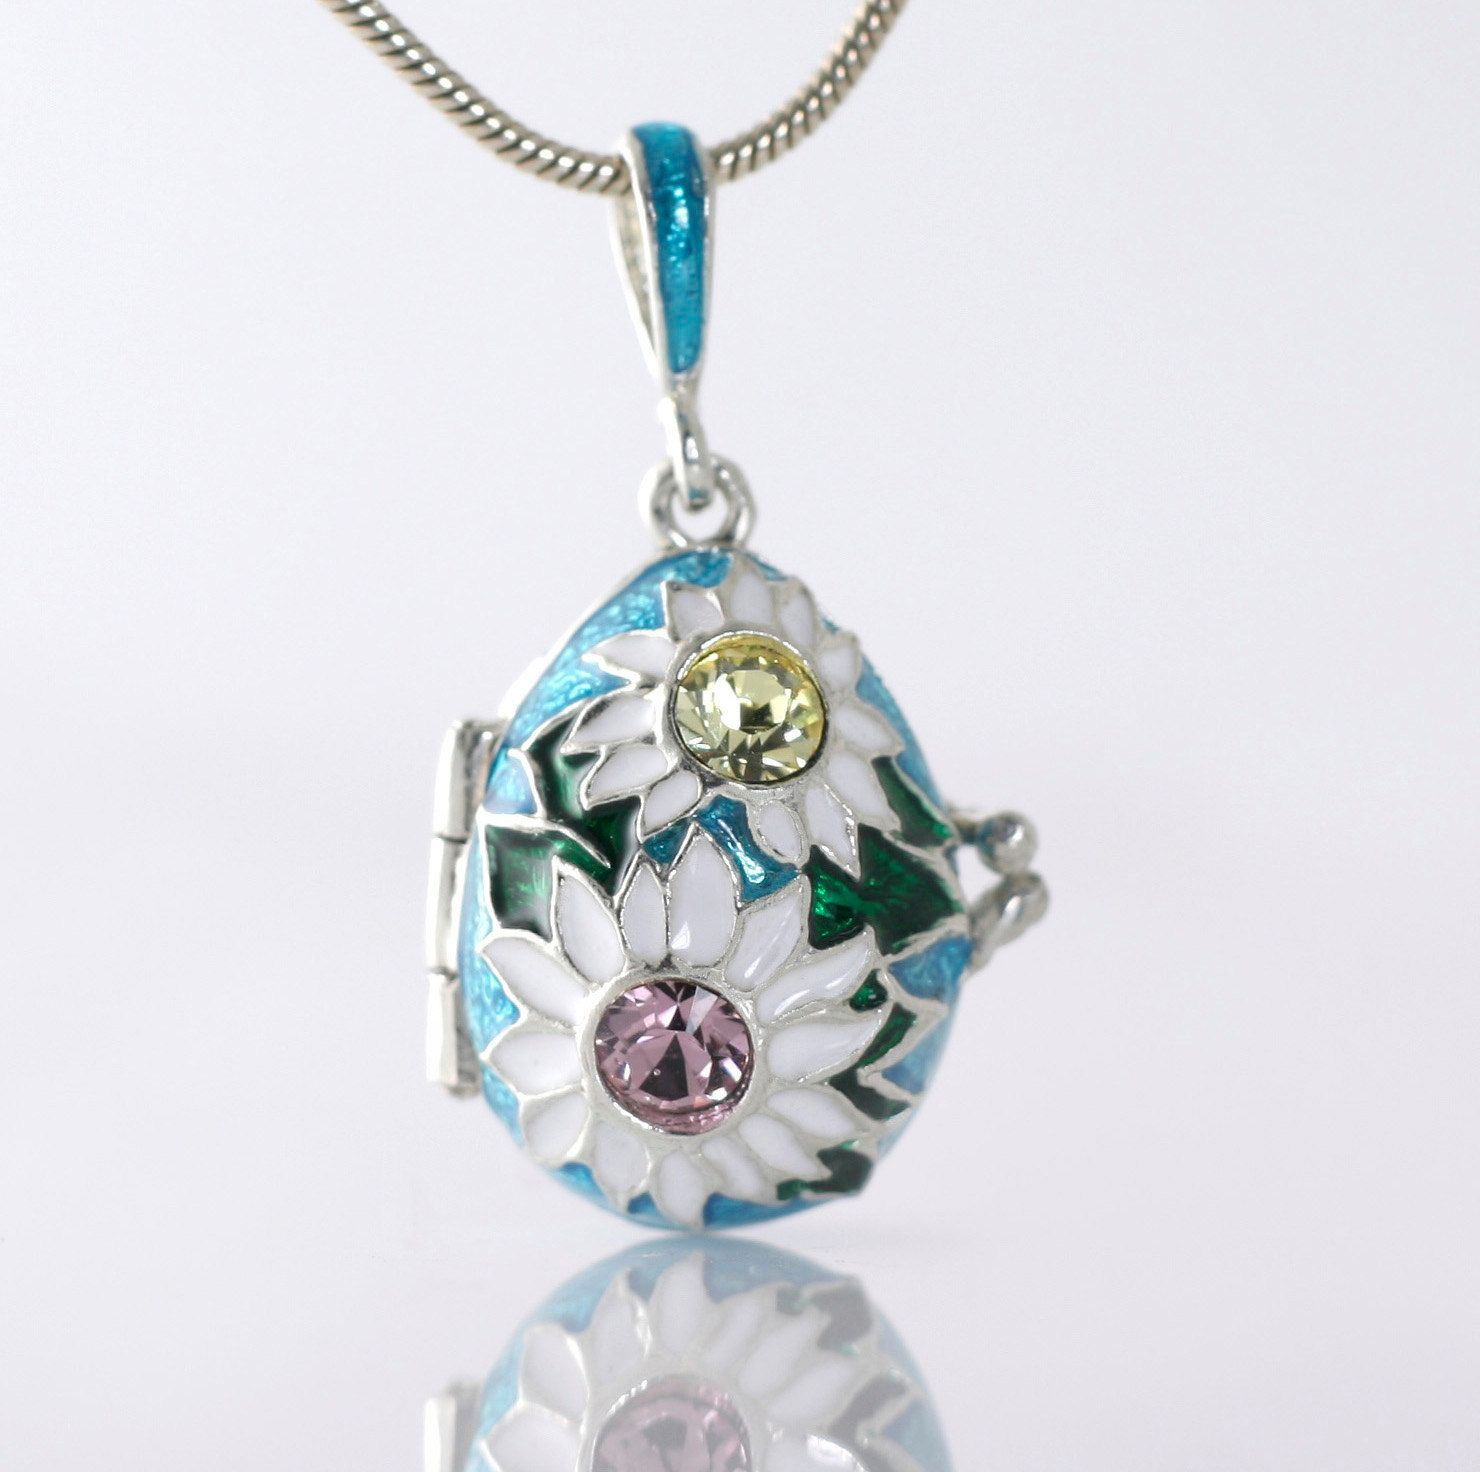 pt pendant losange gautier shop jewels jacques s katheley vintage katheleys crystal products enameled